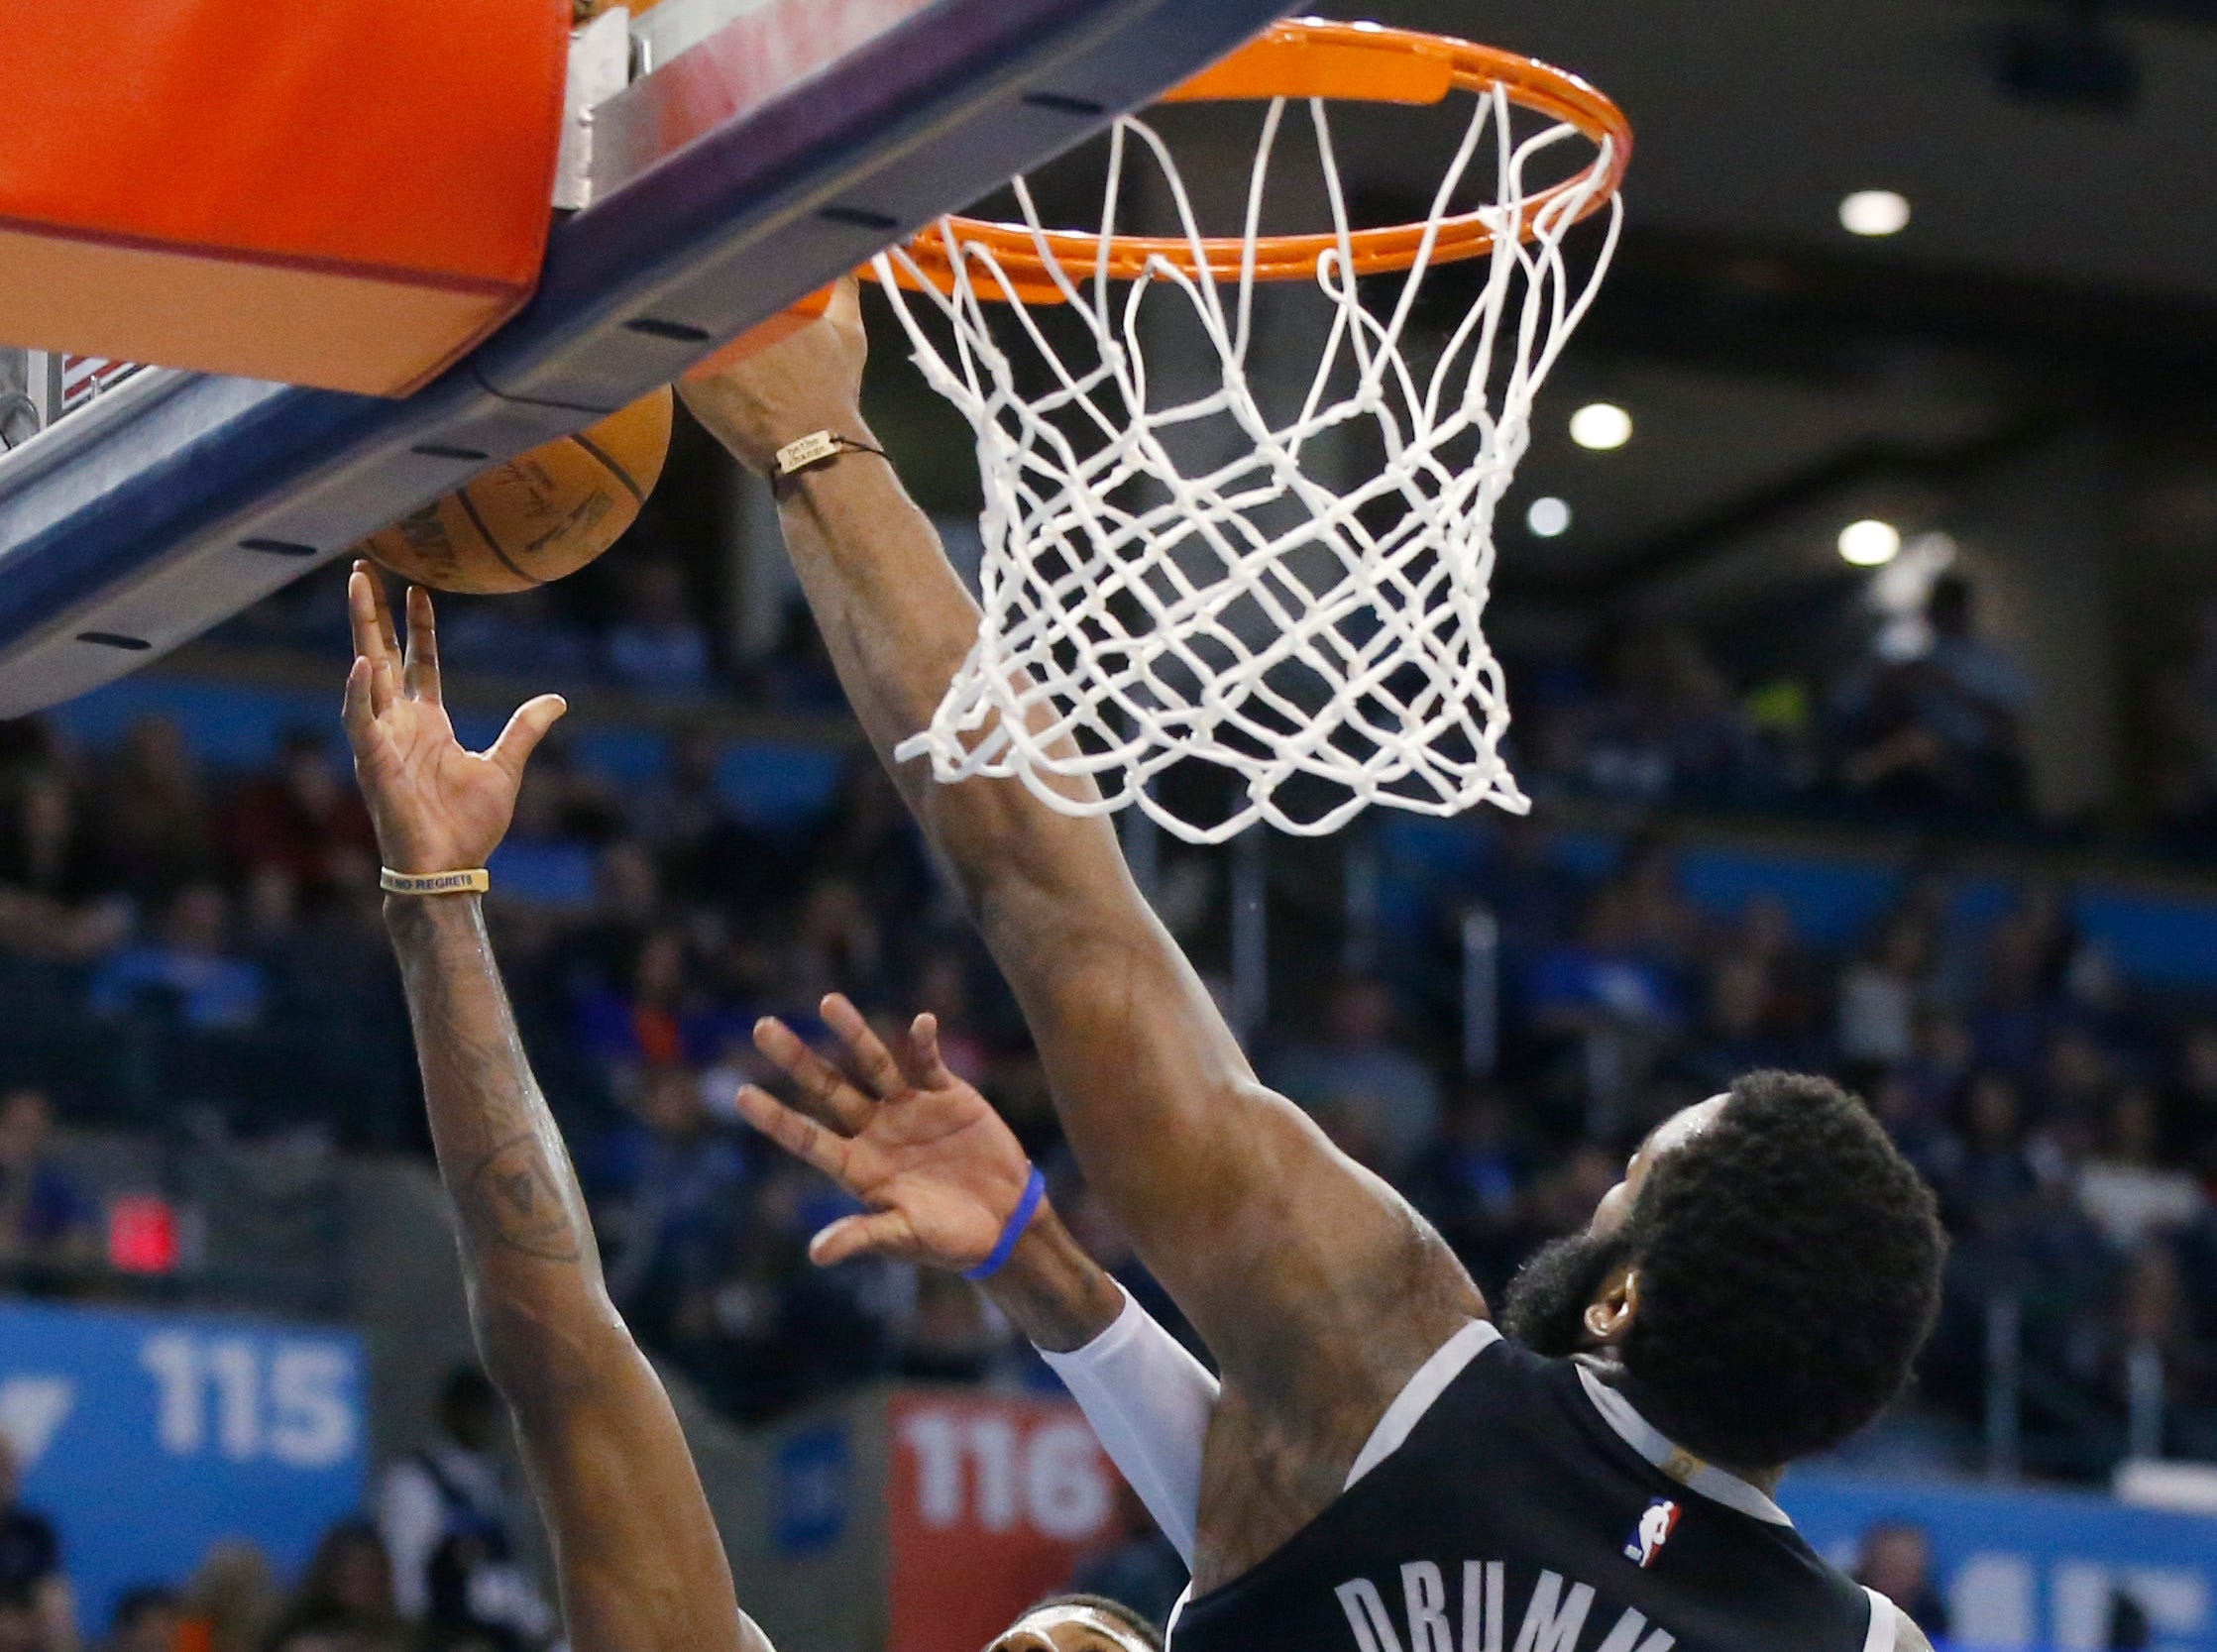 Oklahoma City Thunder forward Paul George (13) shoots as Detroit Pistons center Andre Drummond (0) defends during the second half.